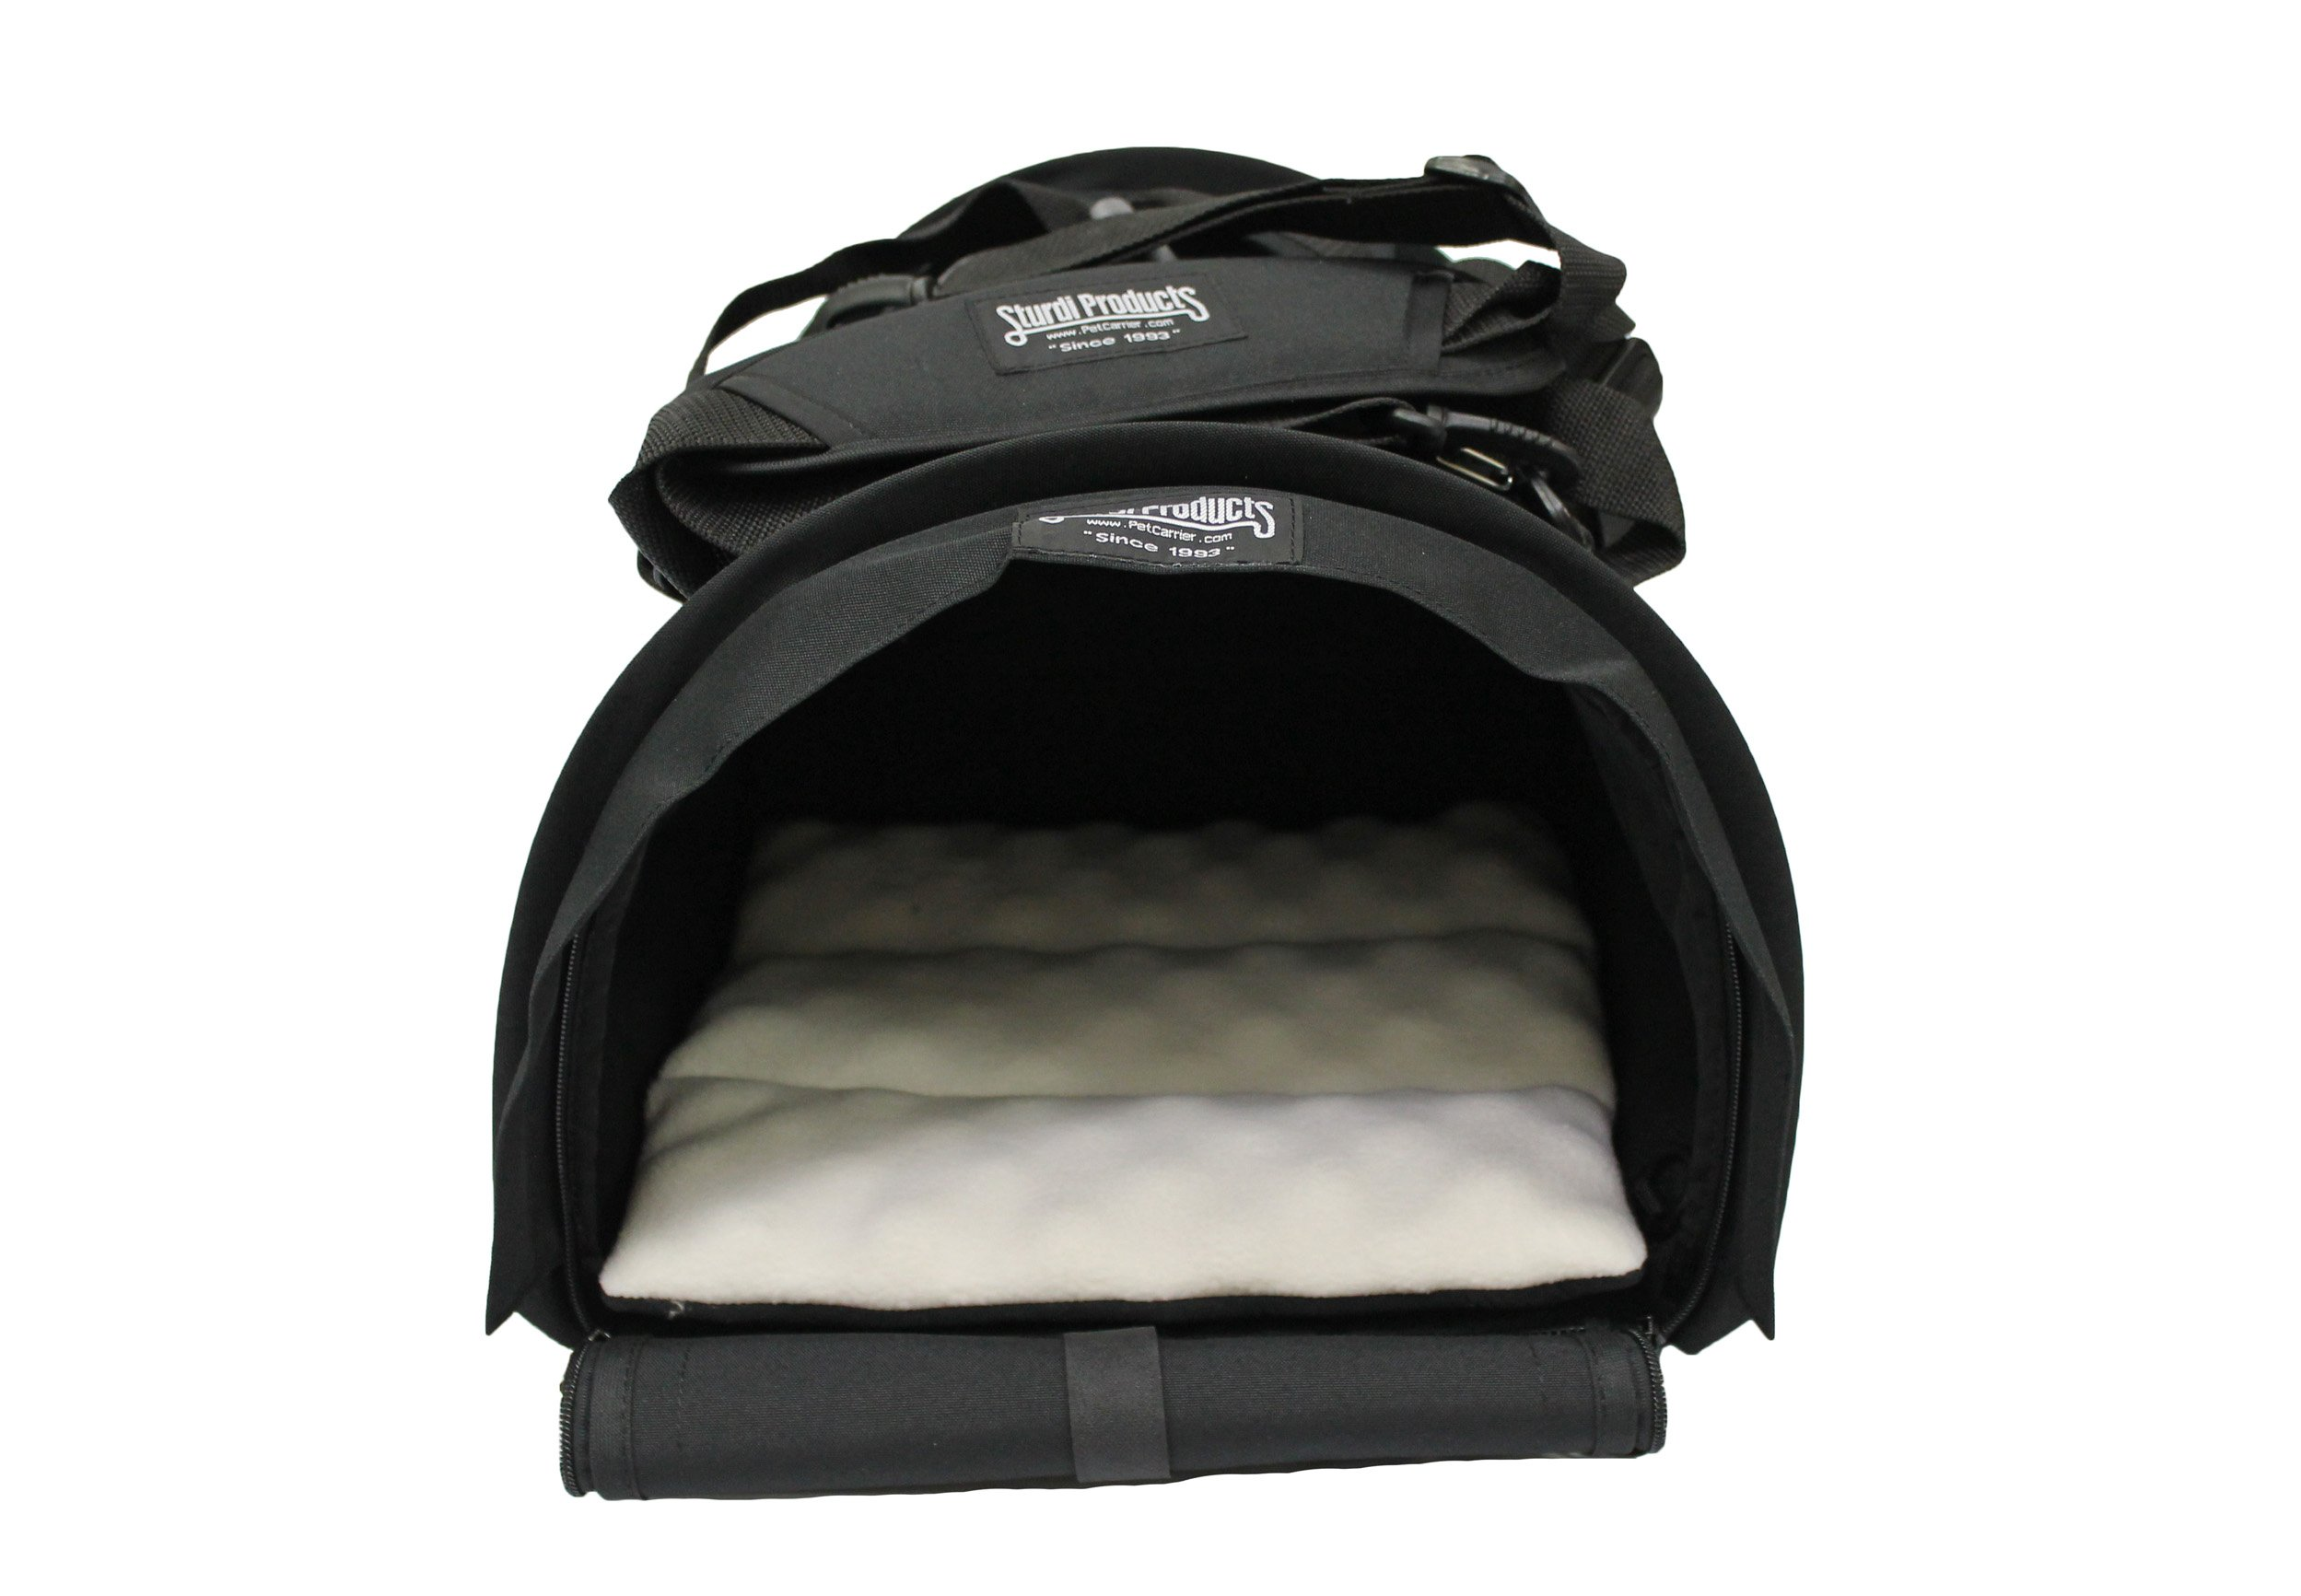 Sturdi Products Bag Cube Pet Carrier, Large, Black